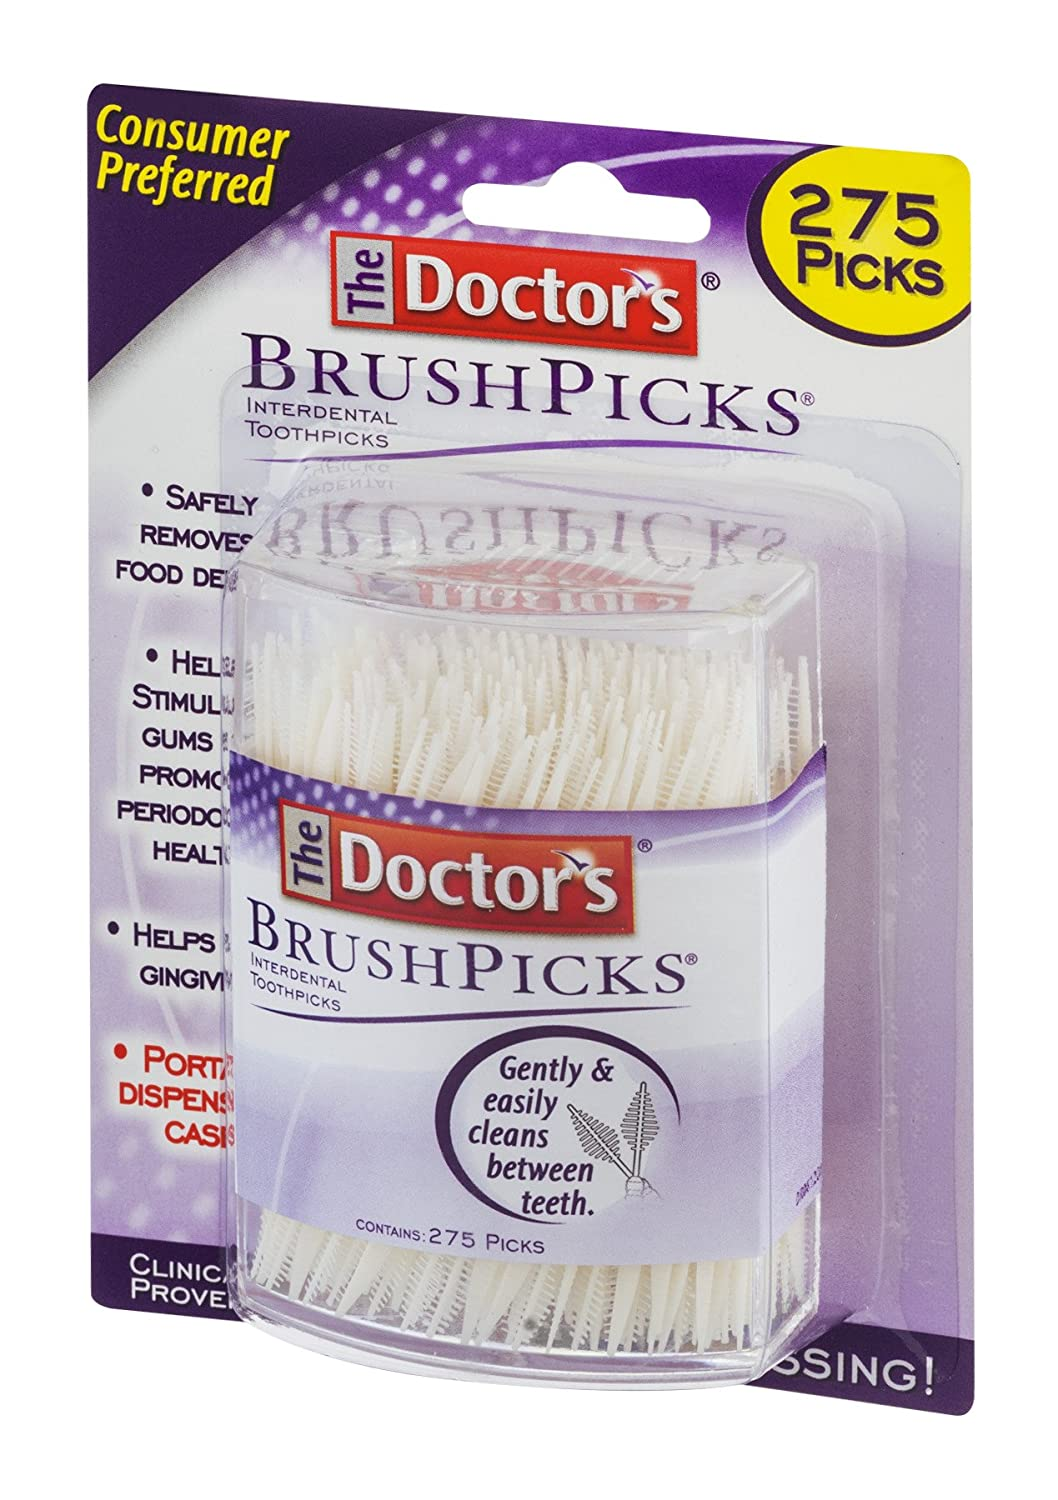 The Doctor BrushPicks Interdental Toothpicks Helps Fight Gingivitis 275 Count Pack of 4